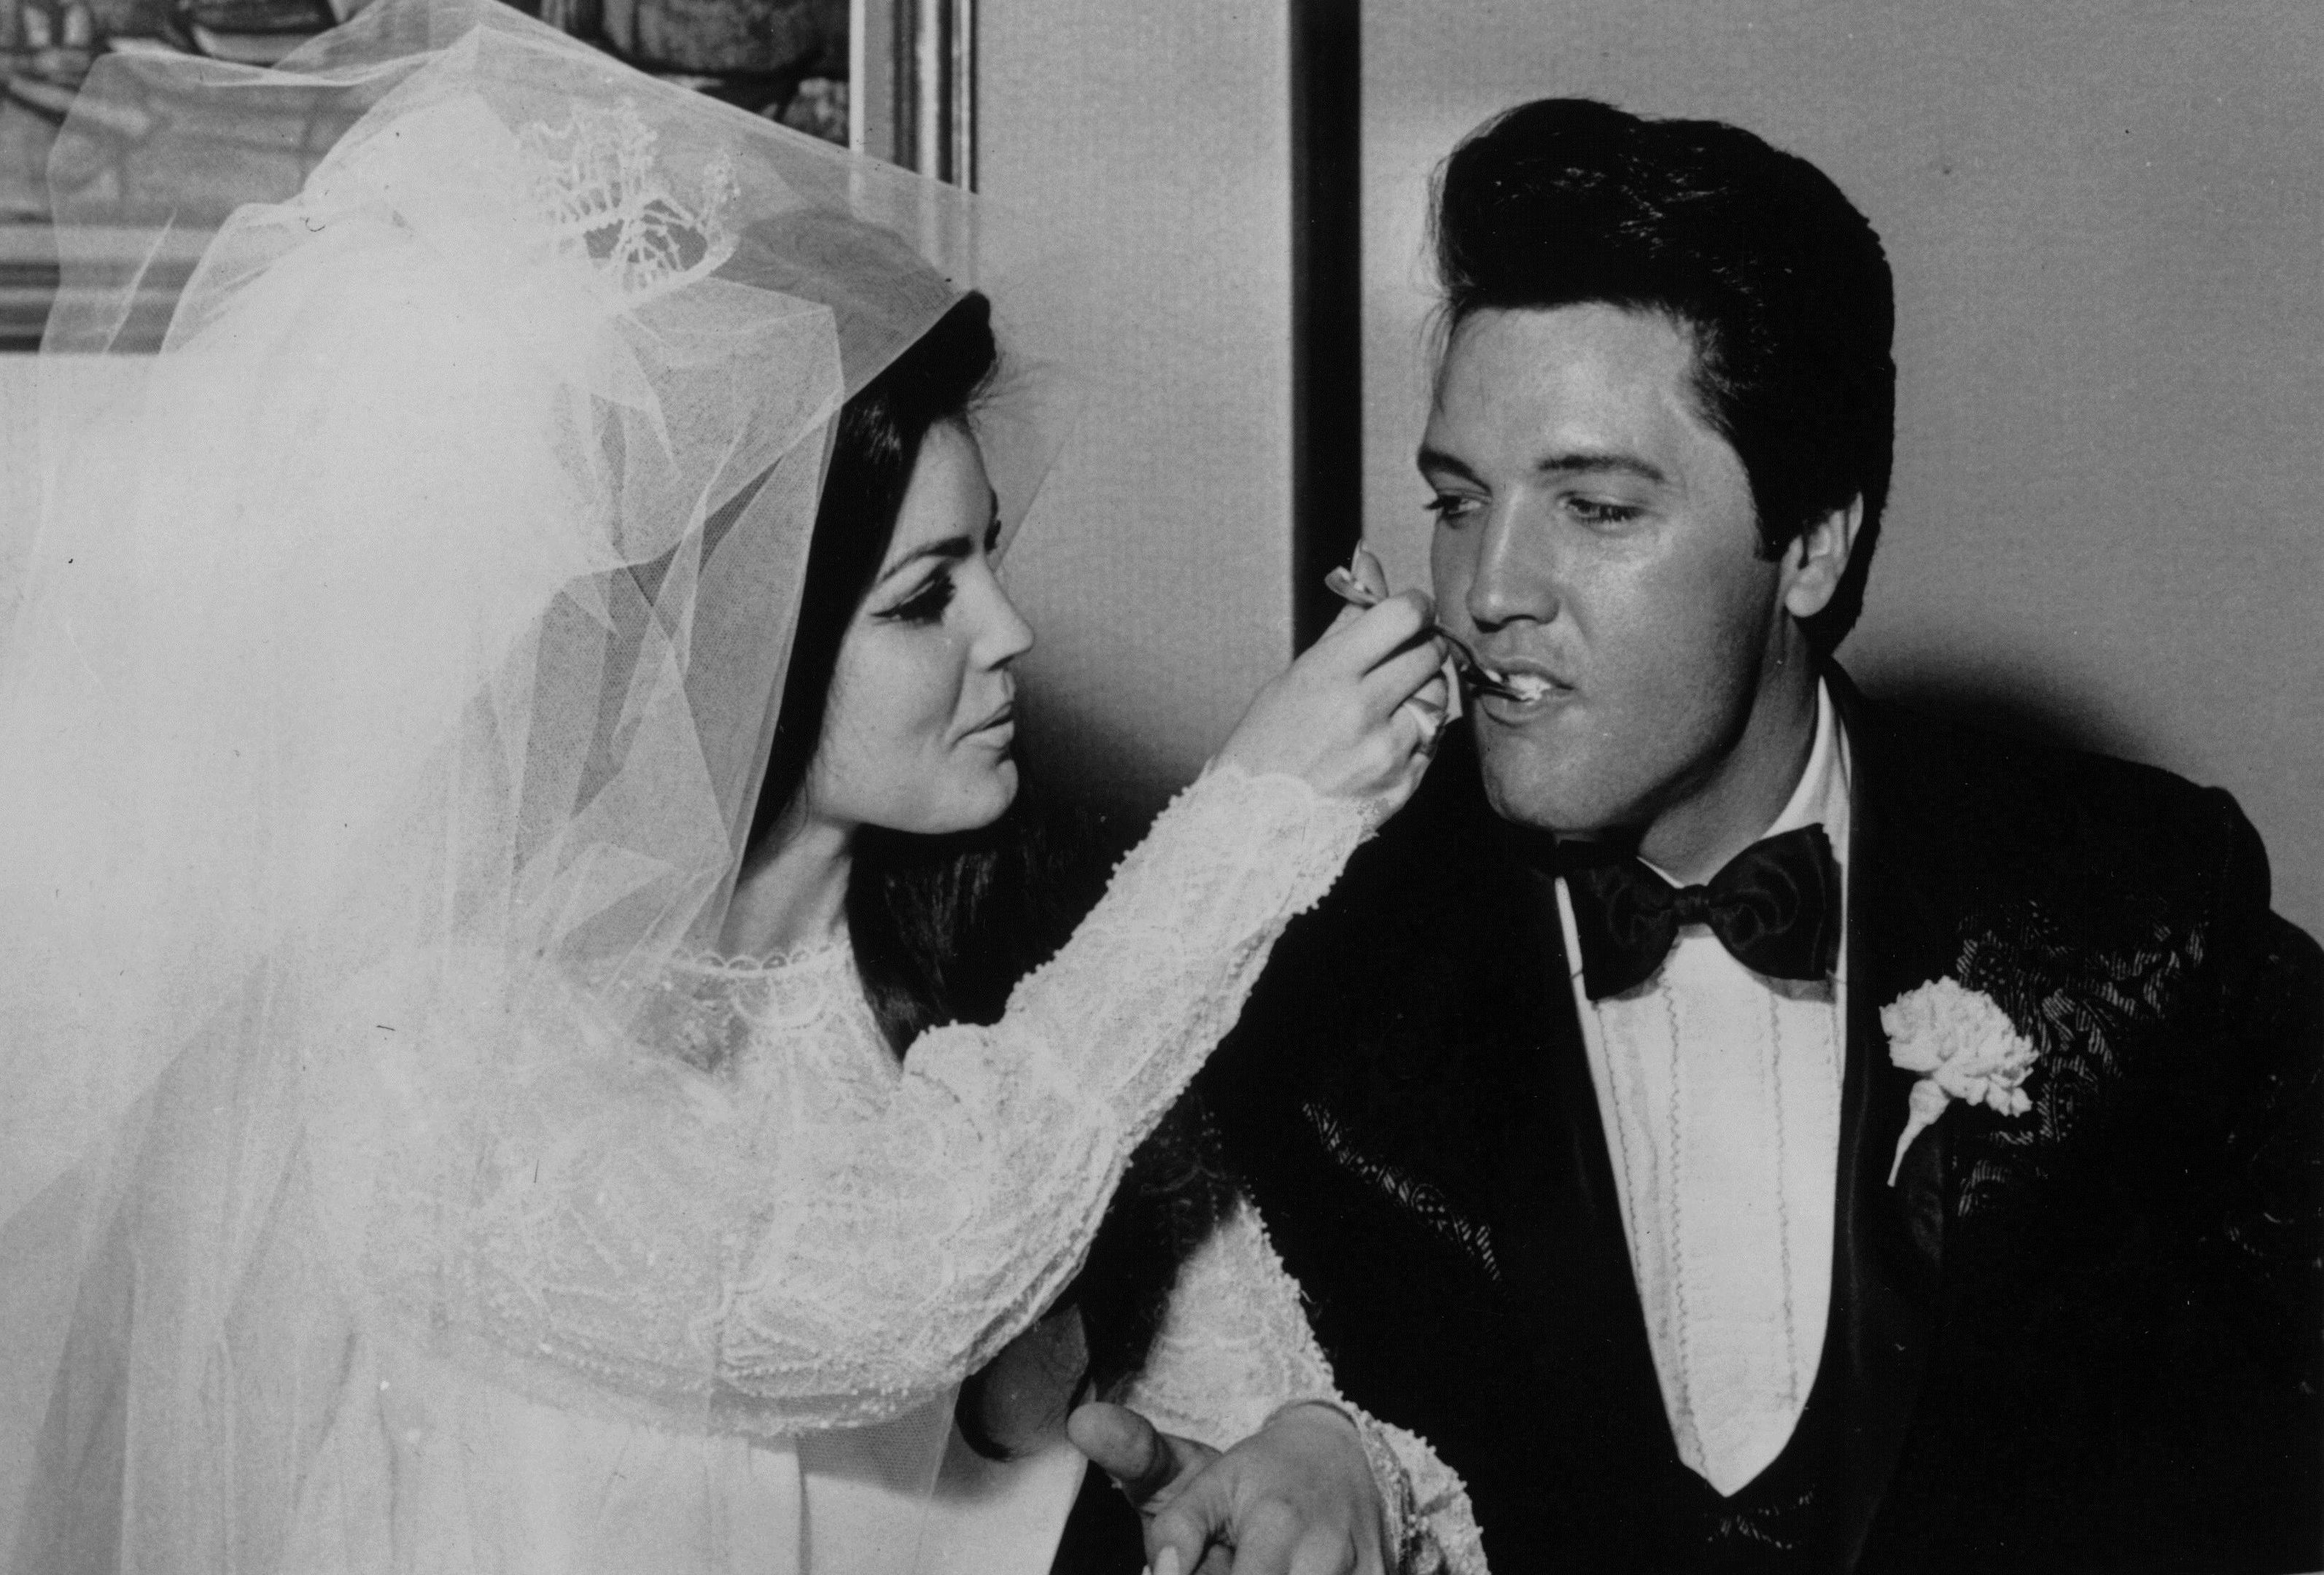 Elvis being fed a mouthful of wedding cake by his bride Priscilla at the Aladdin Hotel, Las Vegas. (Keystone/Getty Images)